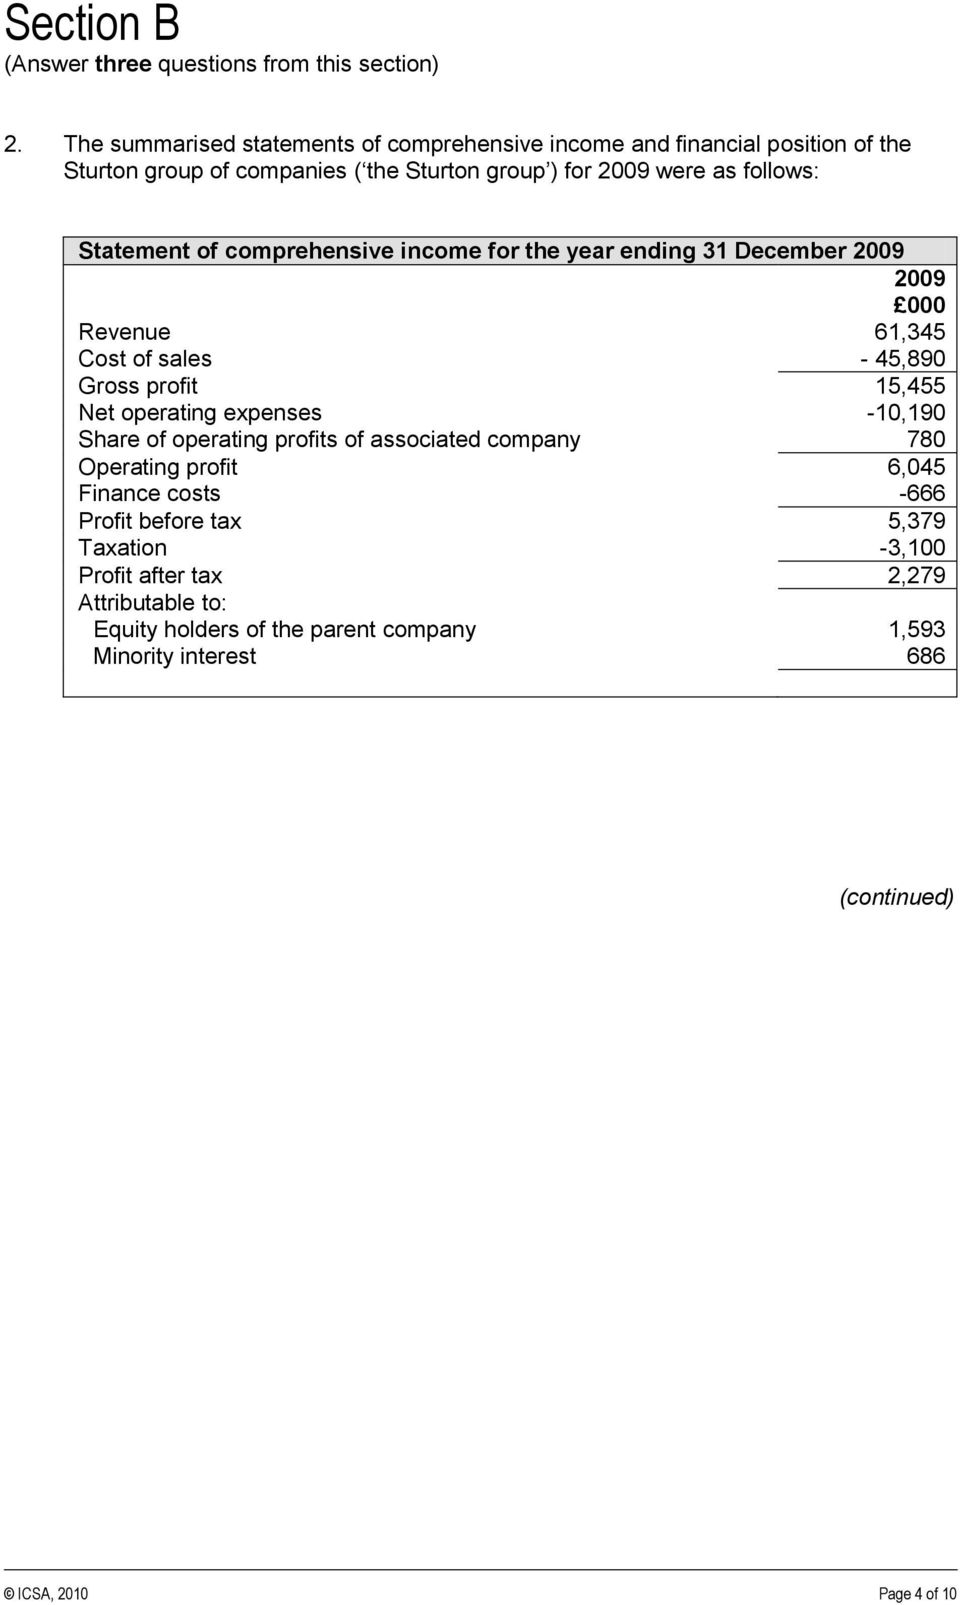 Statement of comprehensive income for the year ending 31 December 2009 2009 000 Revenue 61,345 Cost of sales - 45,890 Gross profit 15,455 Net operating expenses